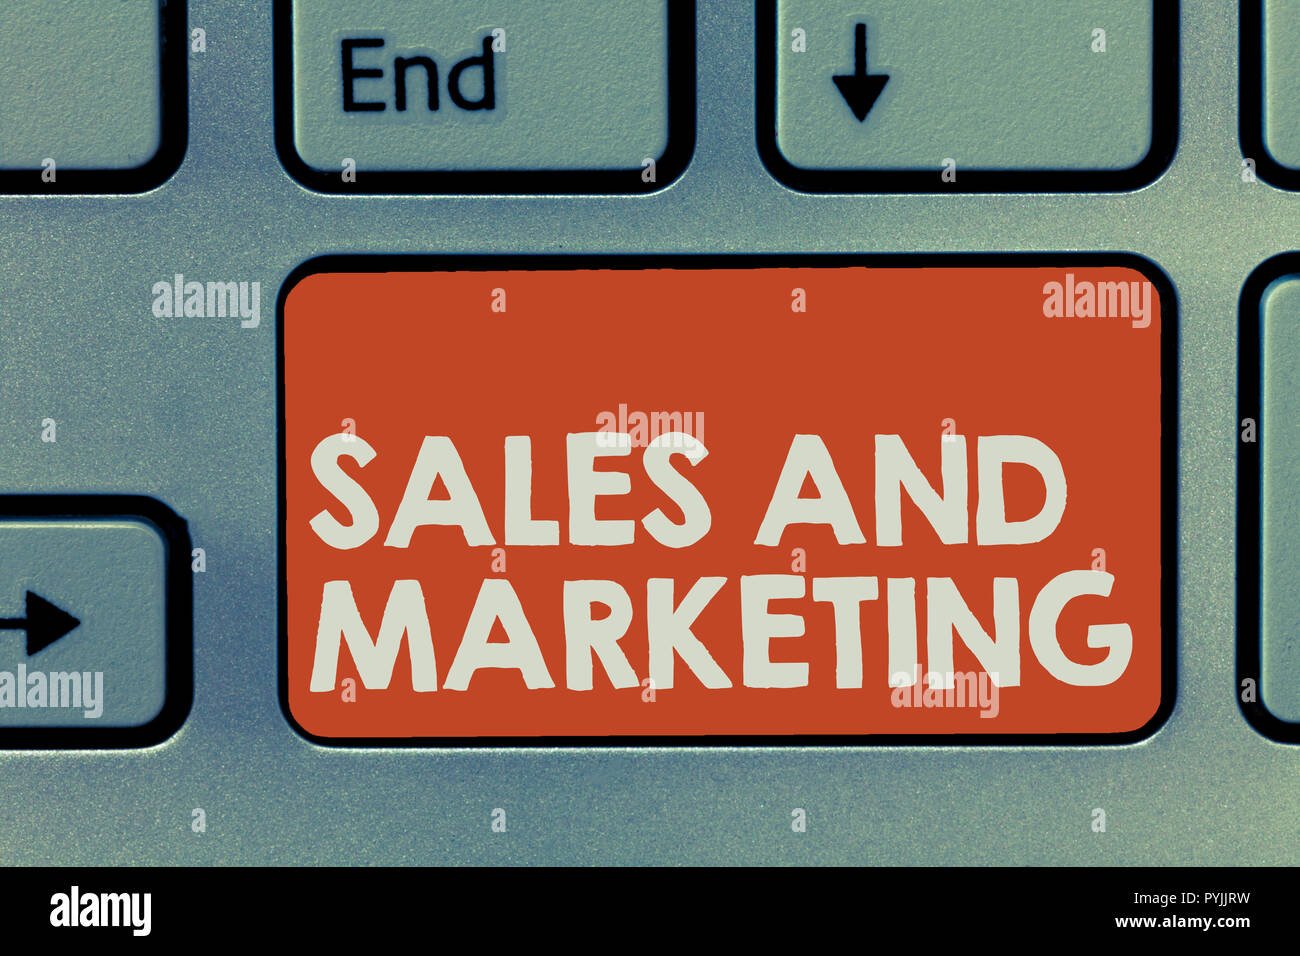 Text sign showing Sales And Marketing. Conceptual photo Promotion Selling Distribution of Goods or Services. - Stock Image